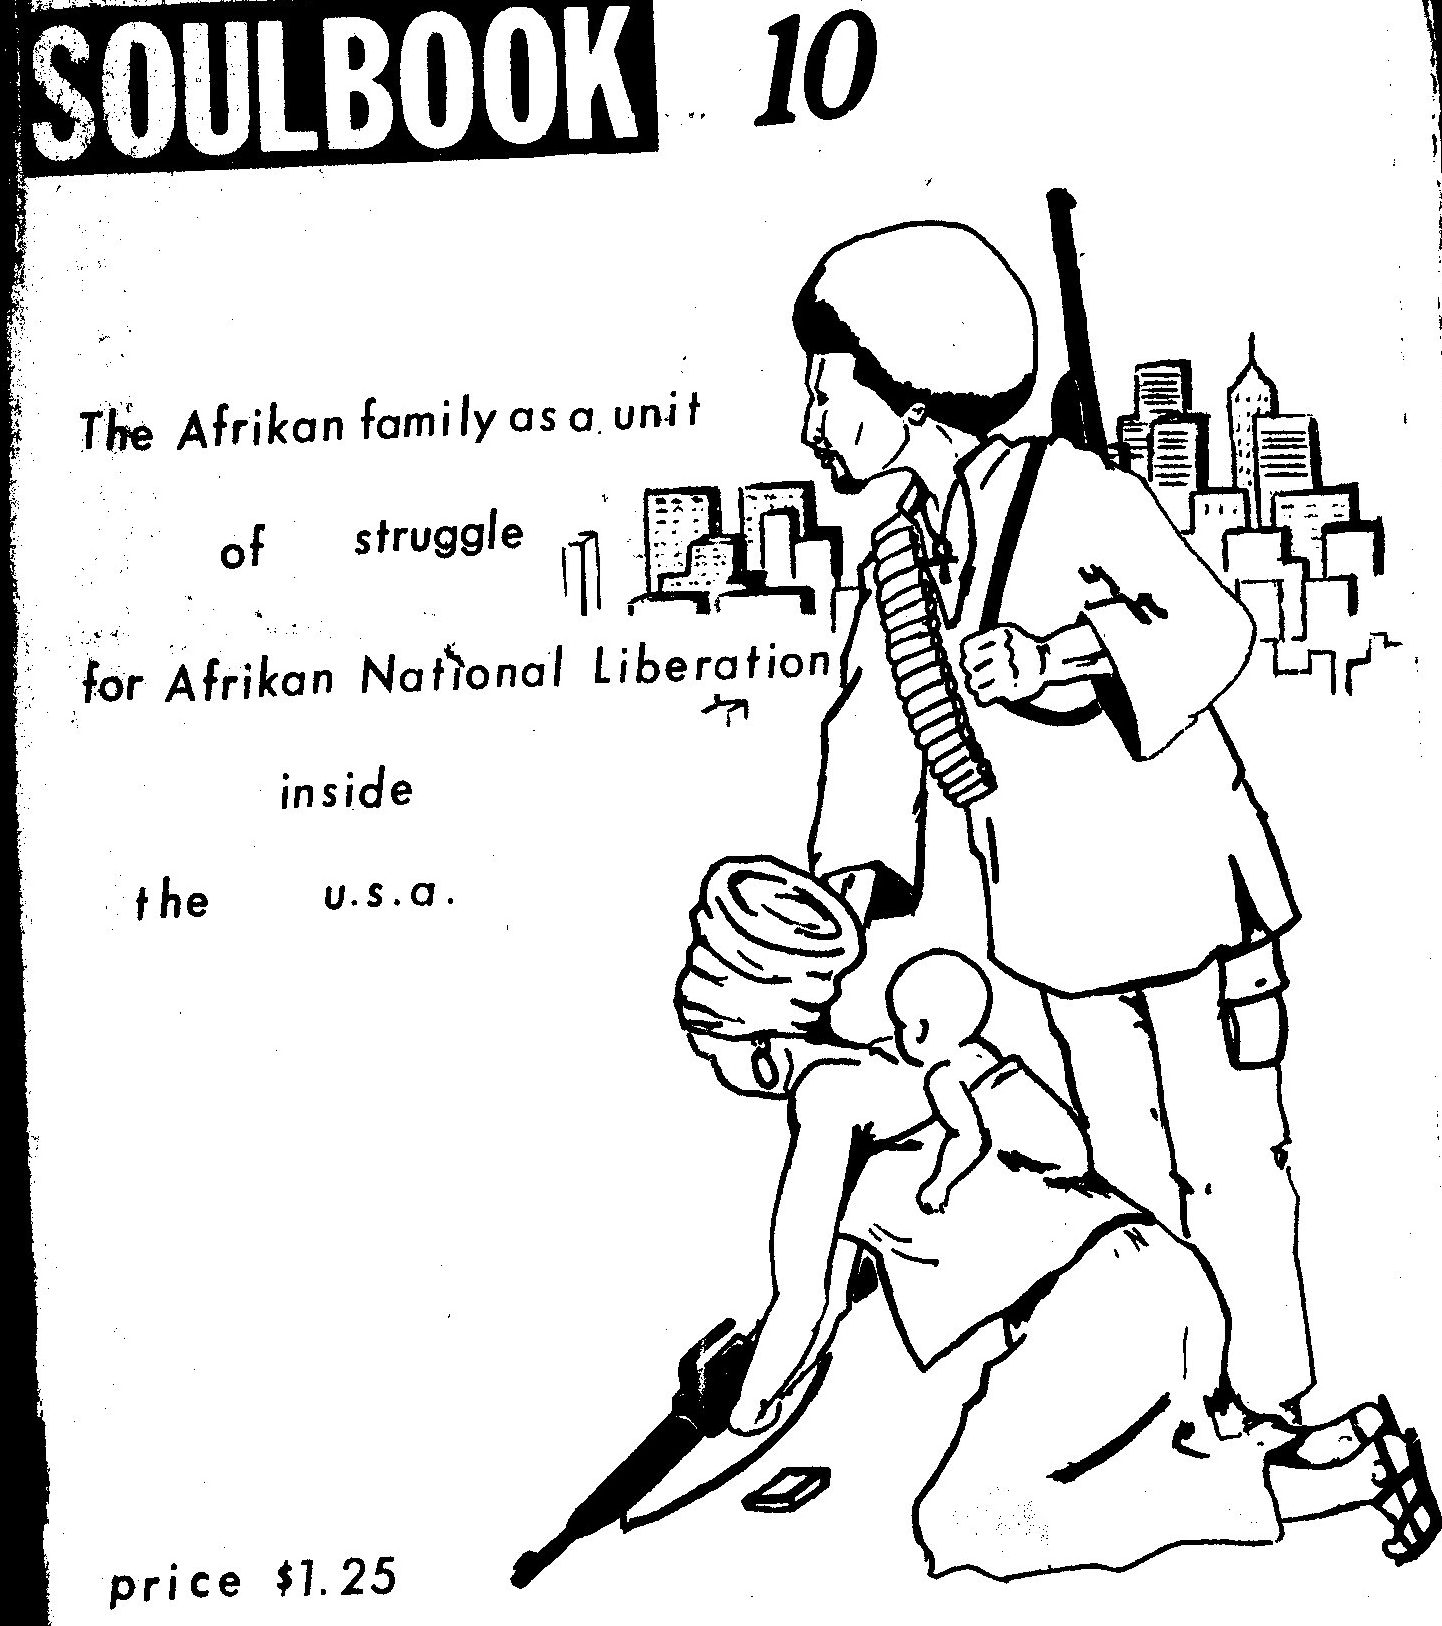 dom archives search engine soulbook is a periodical that features essays poems reflections cartoons and other artistic works intended to further the cause of the black liberation